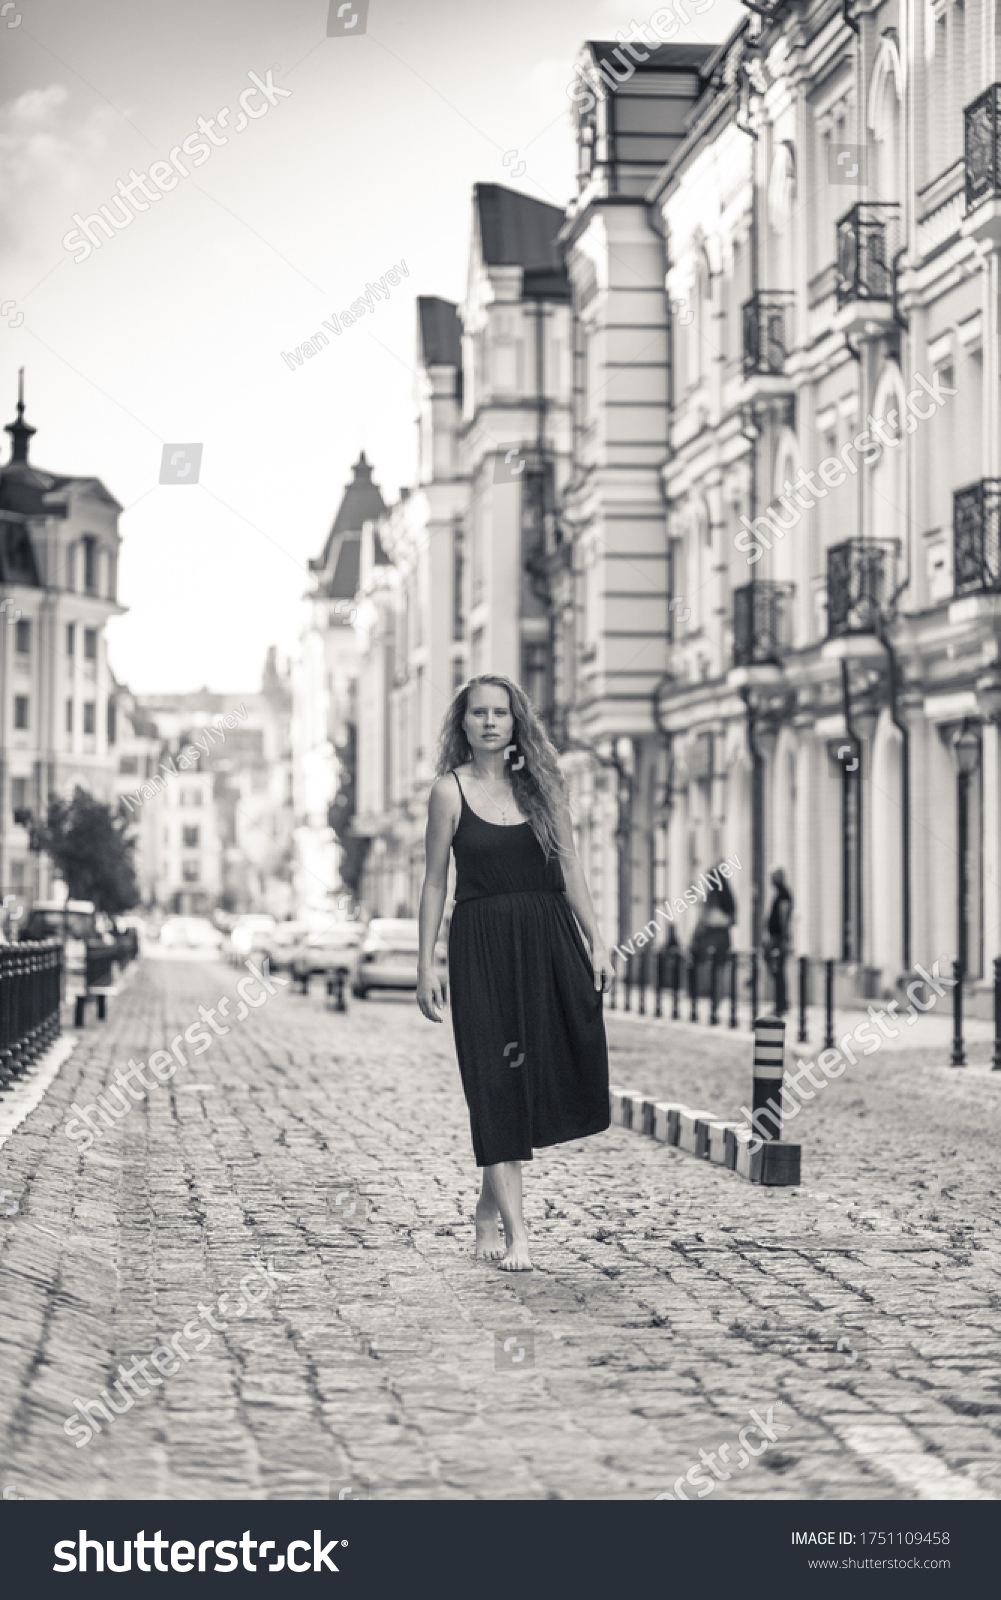 https://image.shutterstock.com/z/stock-photo-a-beautiful-woman-dressed-in-a-black-dress-and-with-long-hair-is-walking-on-the-stones-the-girl-is-1751109458.jpg